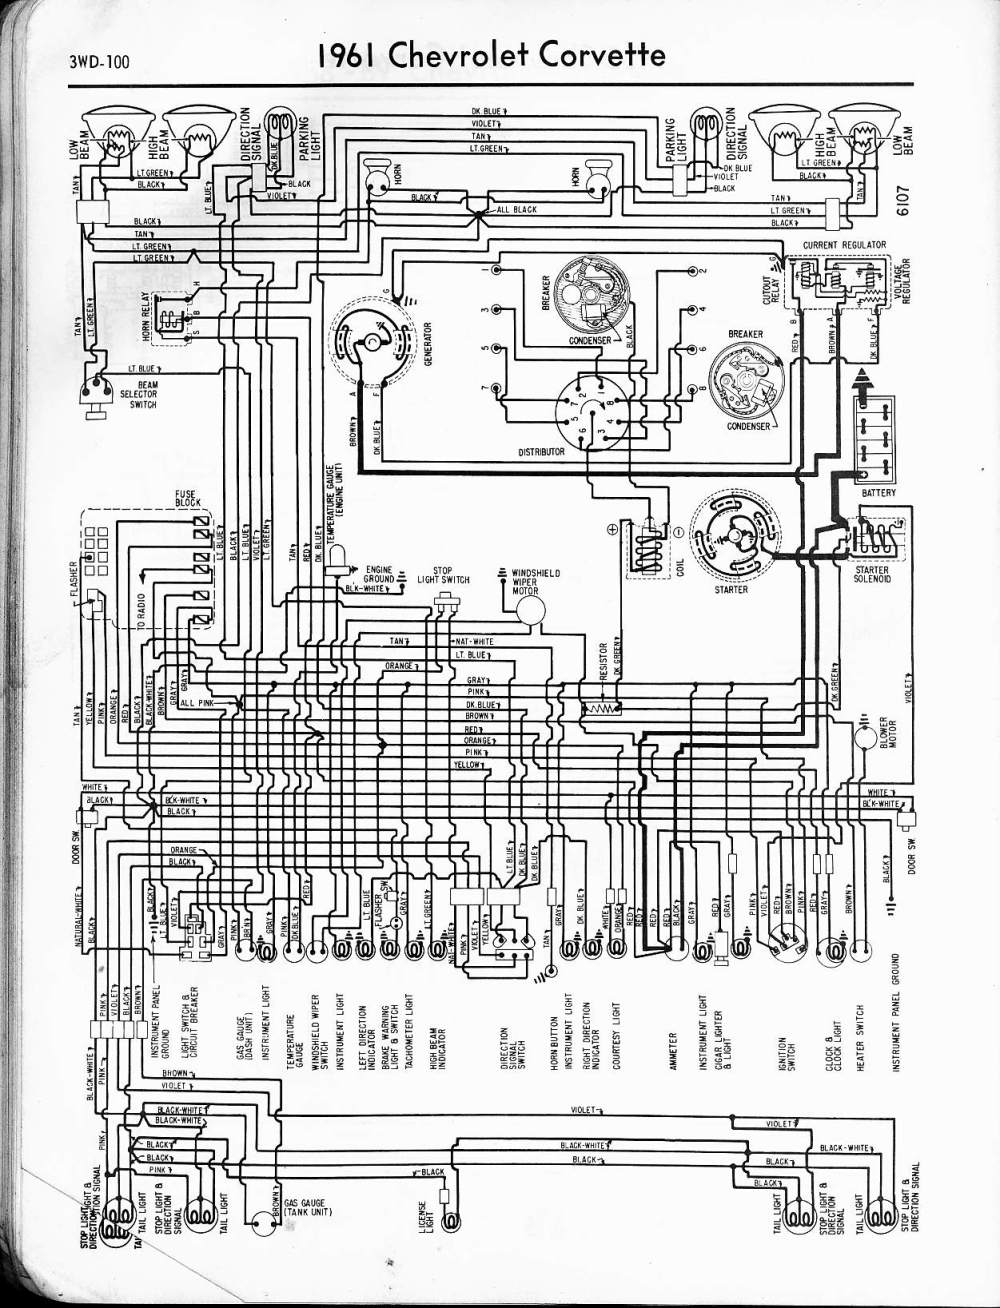 medium resolution of 1957 pontiac wiring harness schema wiring diagram 1957 pontiac wiring harness